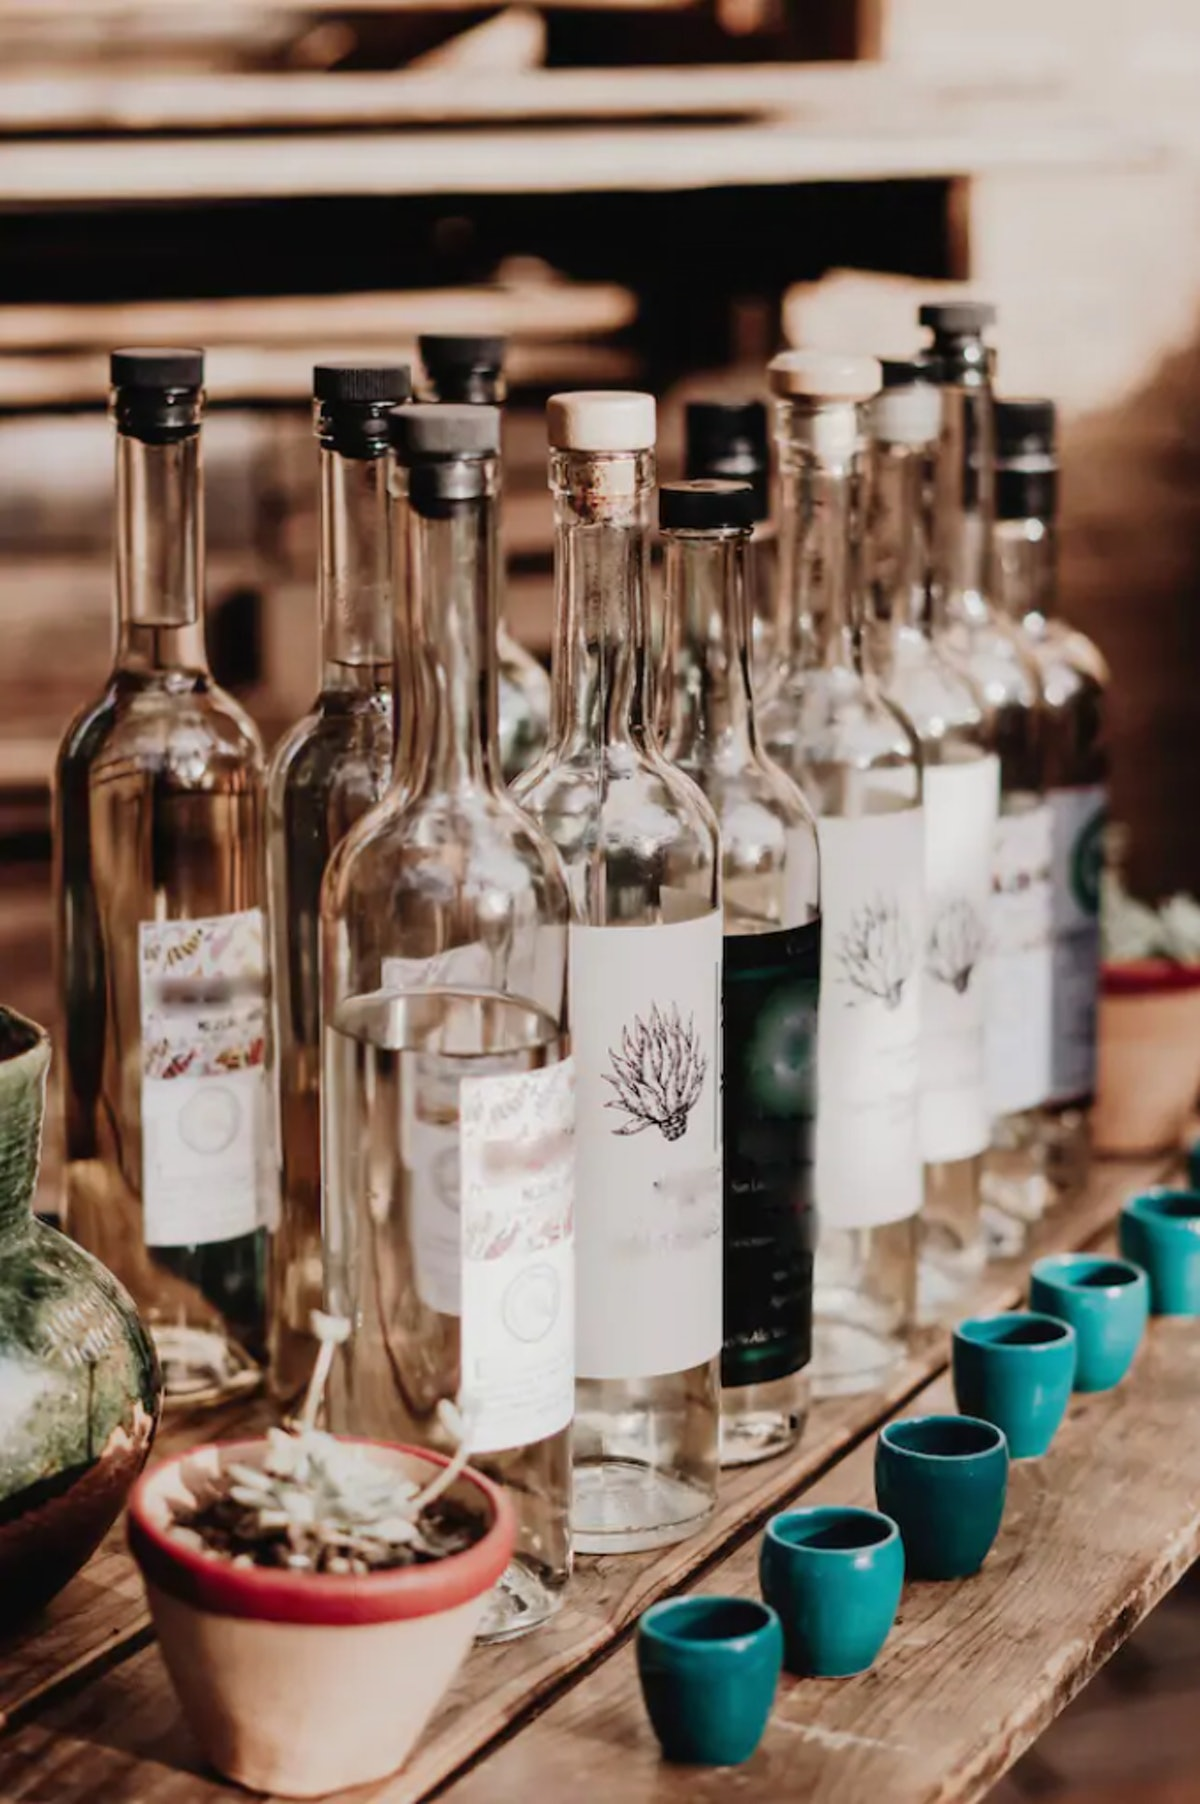 Empty bottles of liquor sit next to bright blue shot glasses on a wooden table.